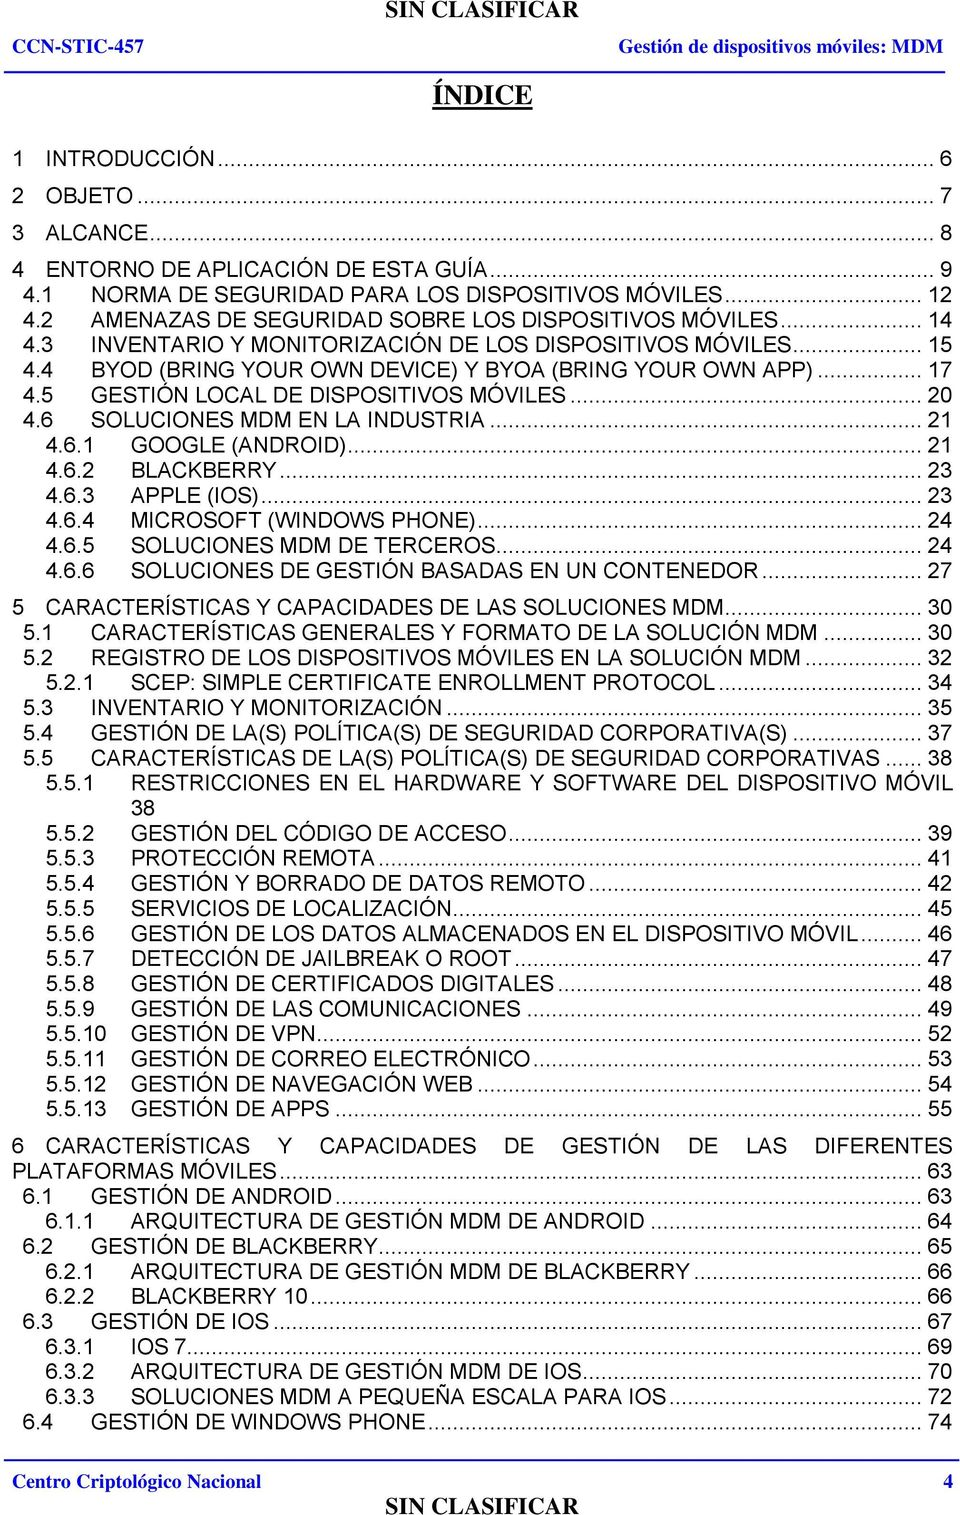 5 GESTIÓN LOCAL DE DISPOSITIVOS MÓVILES... 20 4.6 SOLUCIONES MDM EN LA INDUSTRIA... 21 4.6.1 GOOGLE (ANDROID)... 21 4.6.2 BLACKBERRY... 23 4.6.3 APPLE (IOS)... 23 4.6.4 MICROSOFT (WINDOWS PHONE).